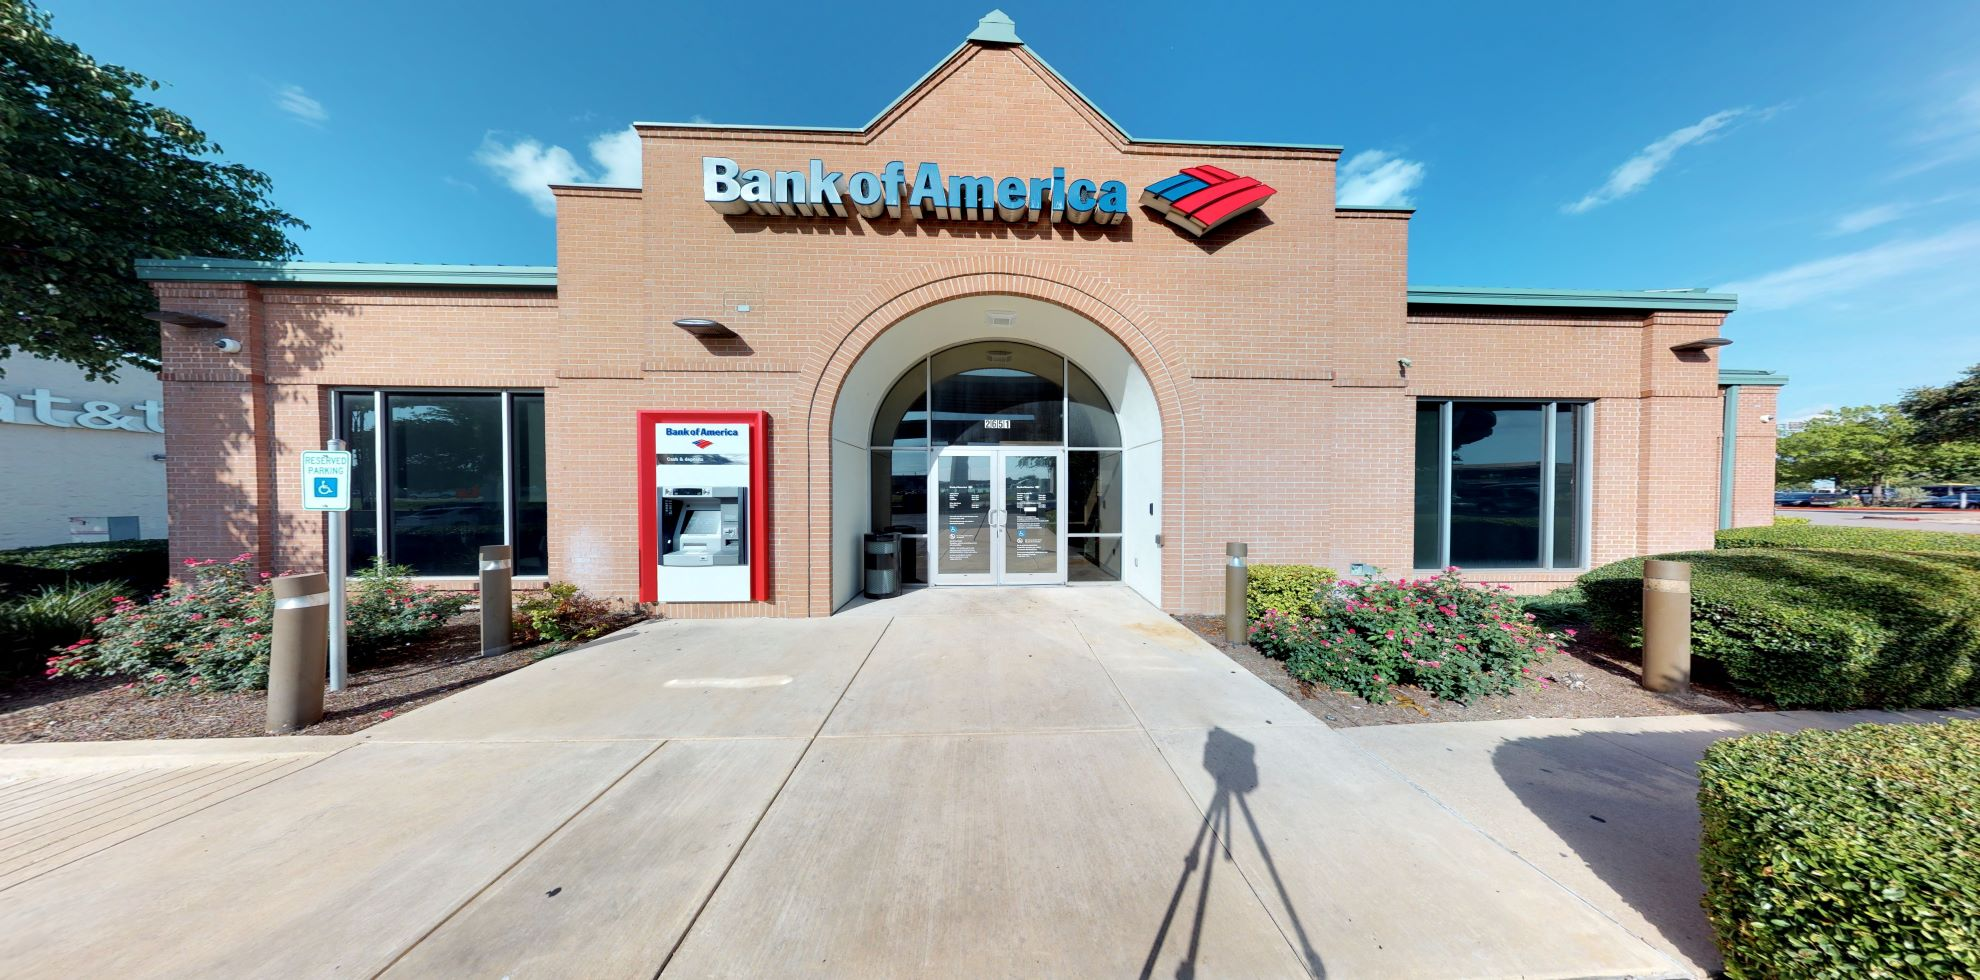 Bank of America financial center with drive-thru ATM and teller | 2651 S IH 35, Round Rock, TX 78664